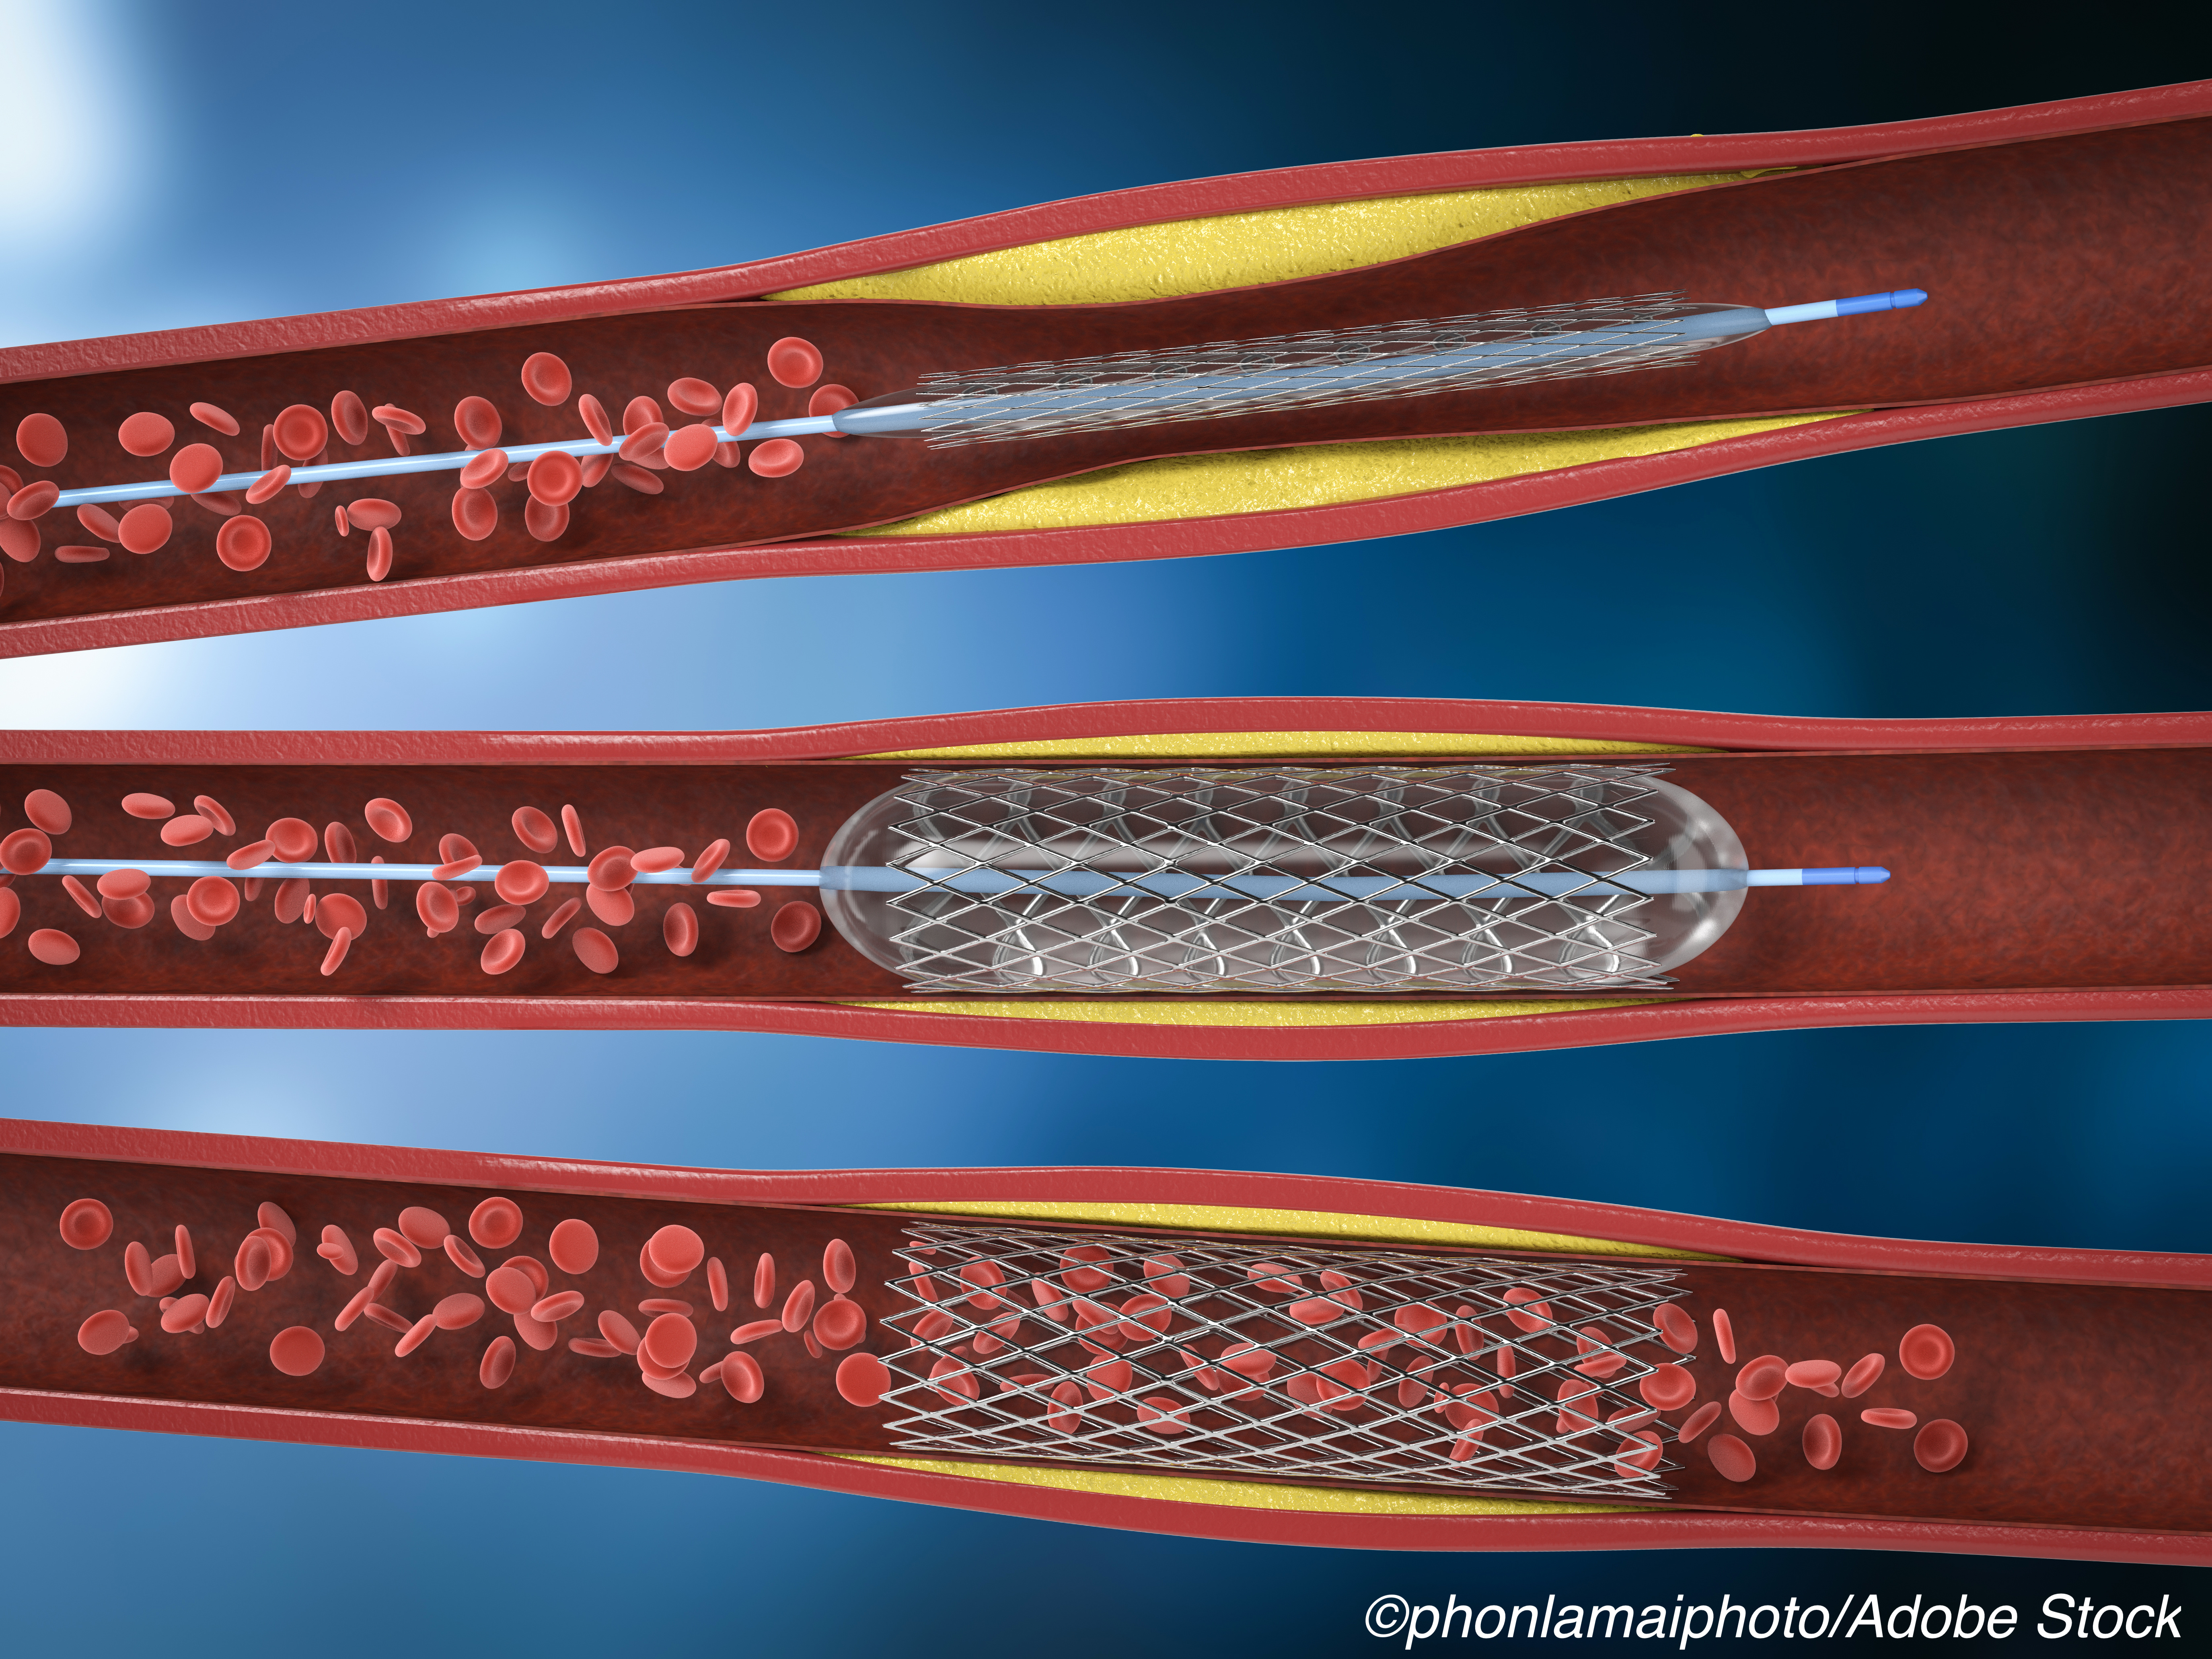 CABG or Stent? 10-Year SYNTAXES Data Find Equipoise